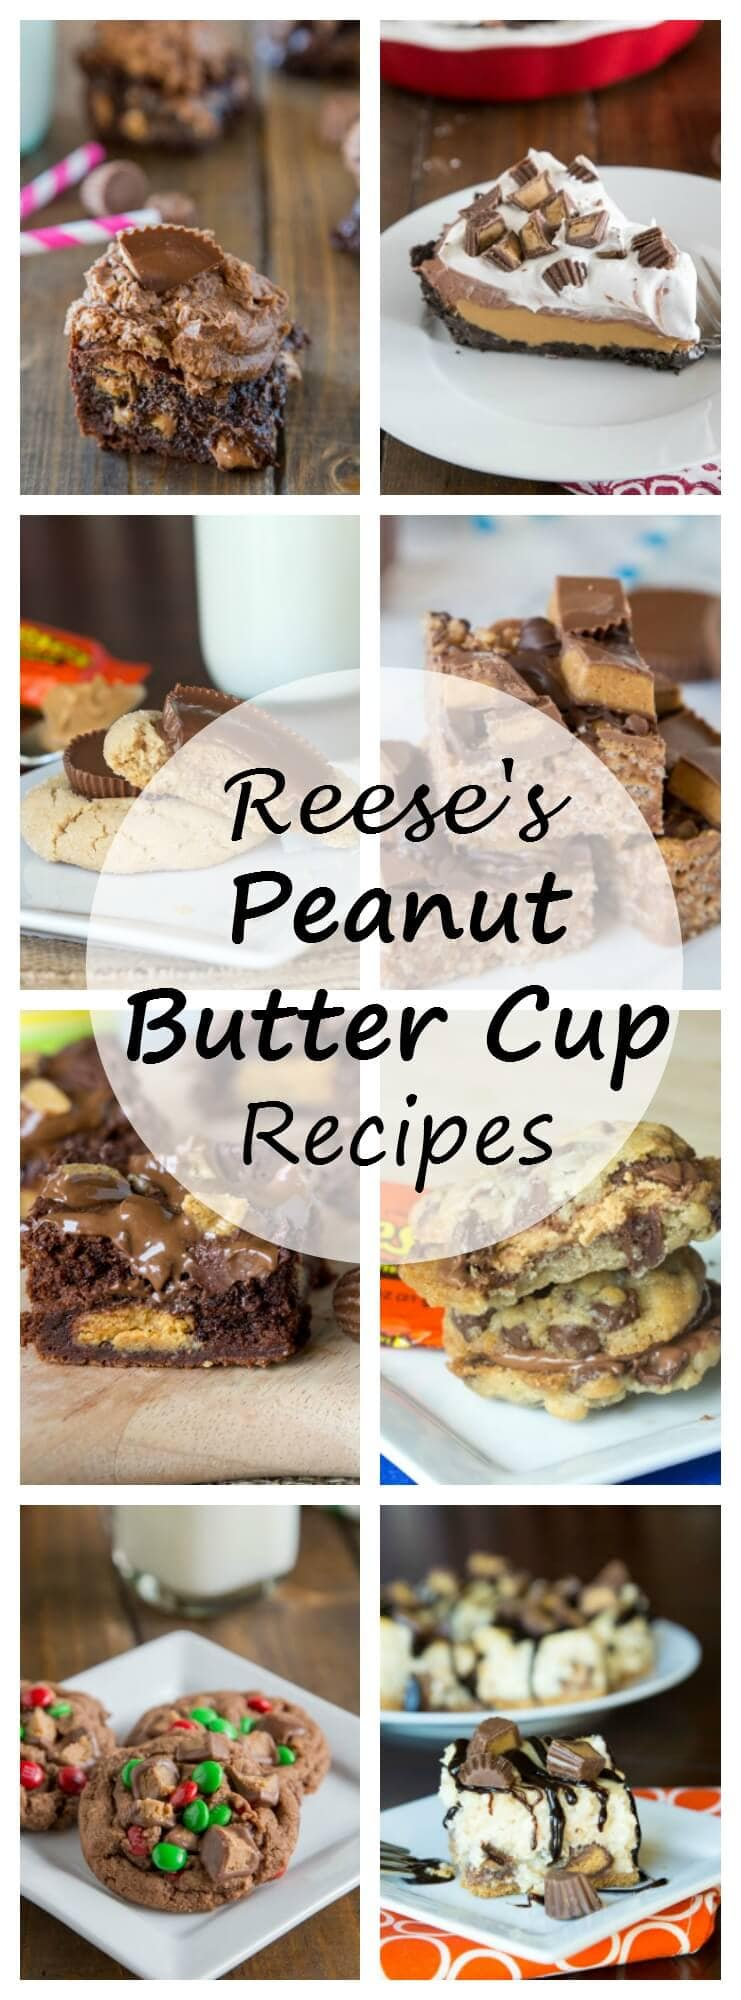 23 reese 39 s peanut butter cup recipes dinners dishes for Dessert recipes using peanut butter